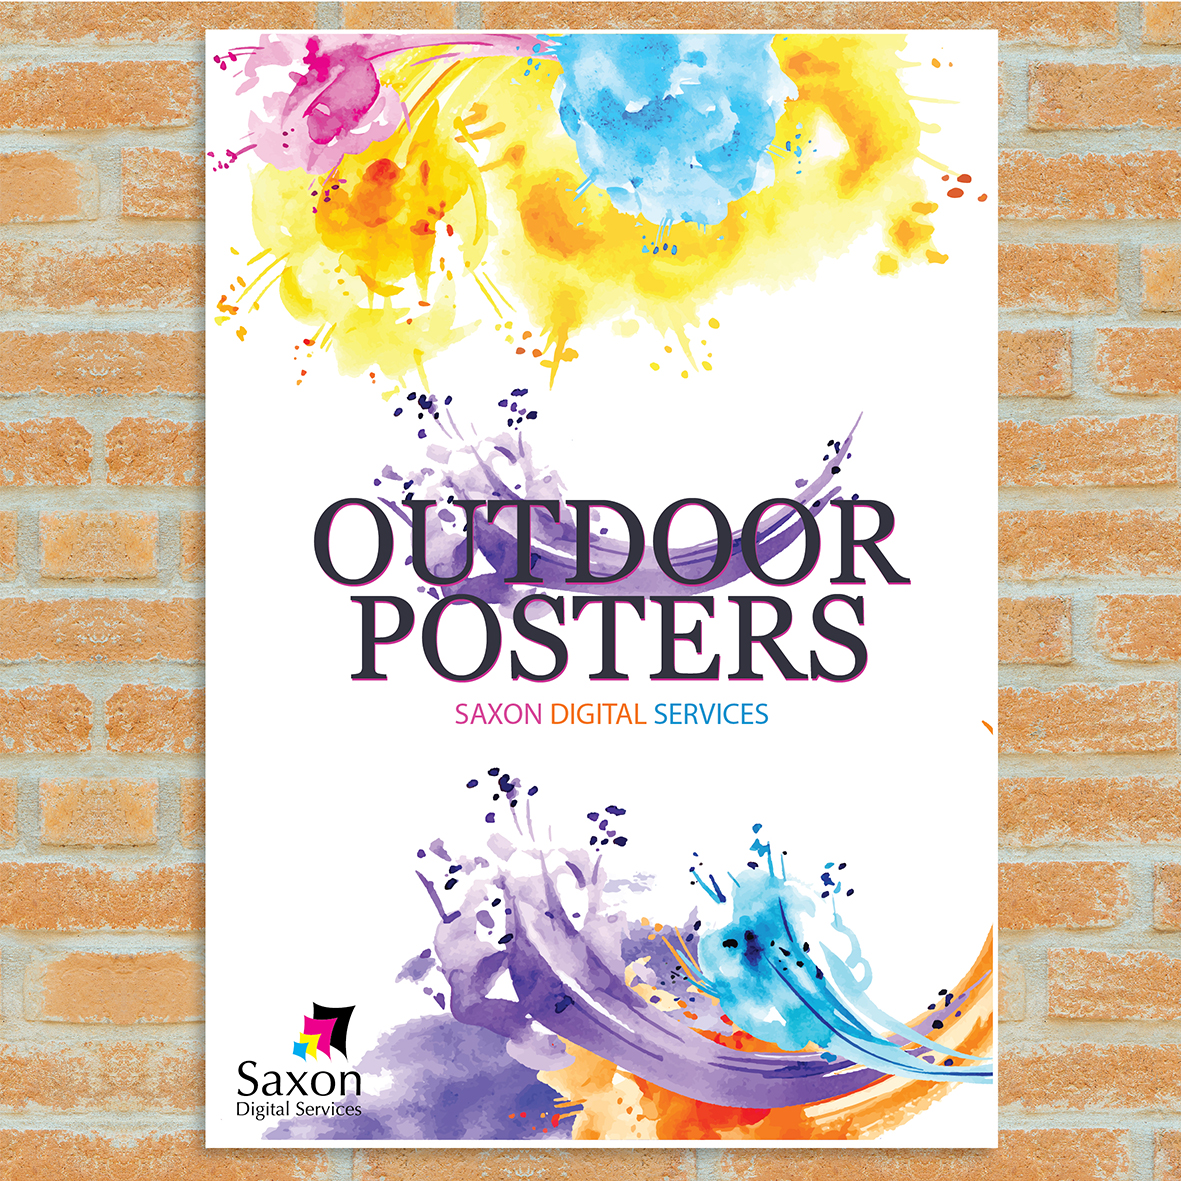 Outdoor poster by Saxon Digital Service. White poster with multicolour paint splash design.